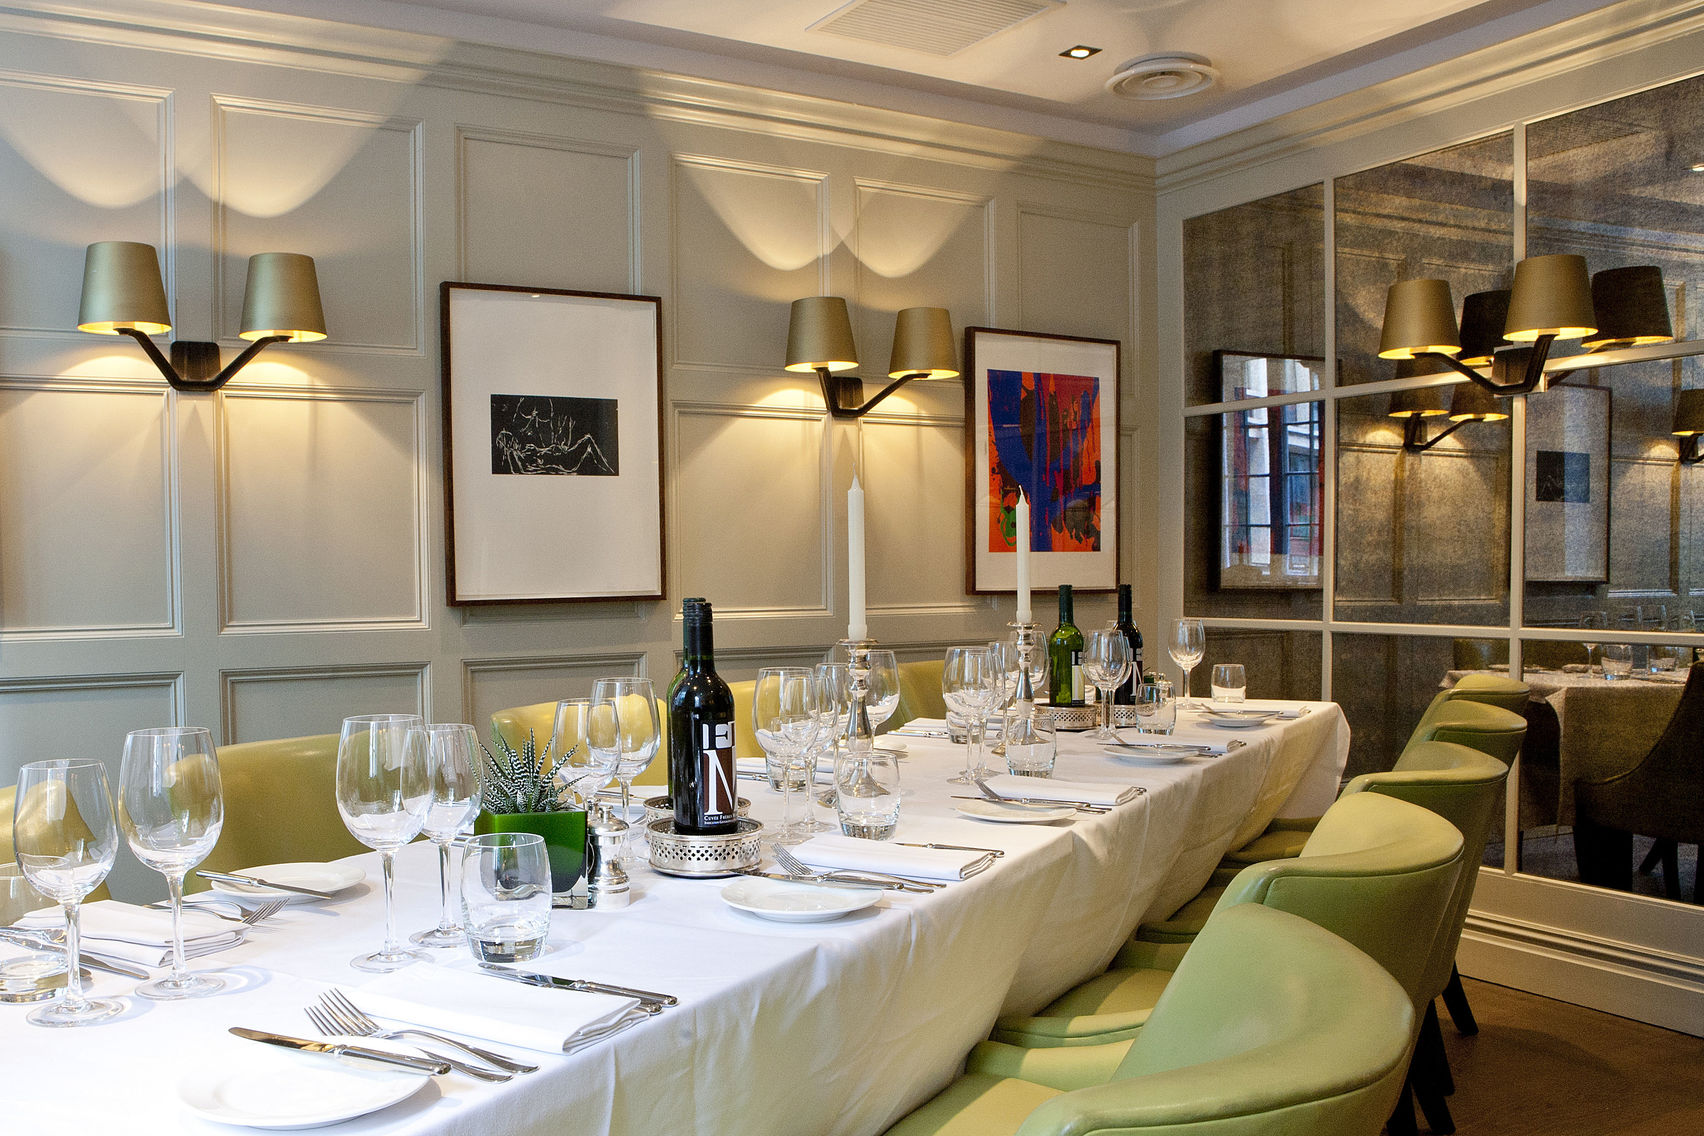 Grub Street, Chiswell Street Dining Rooms